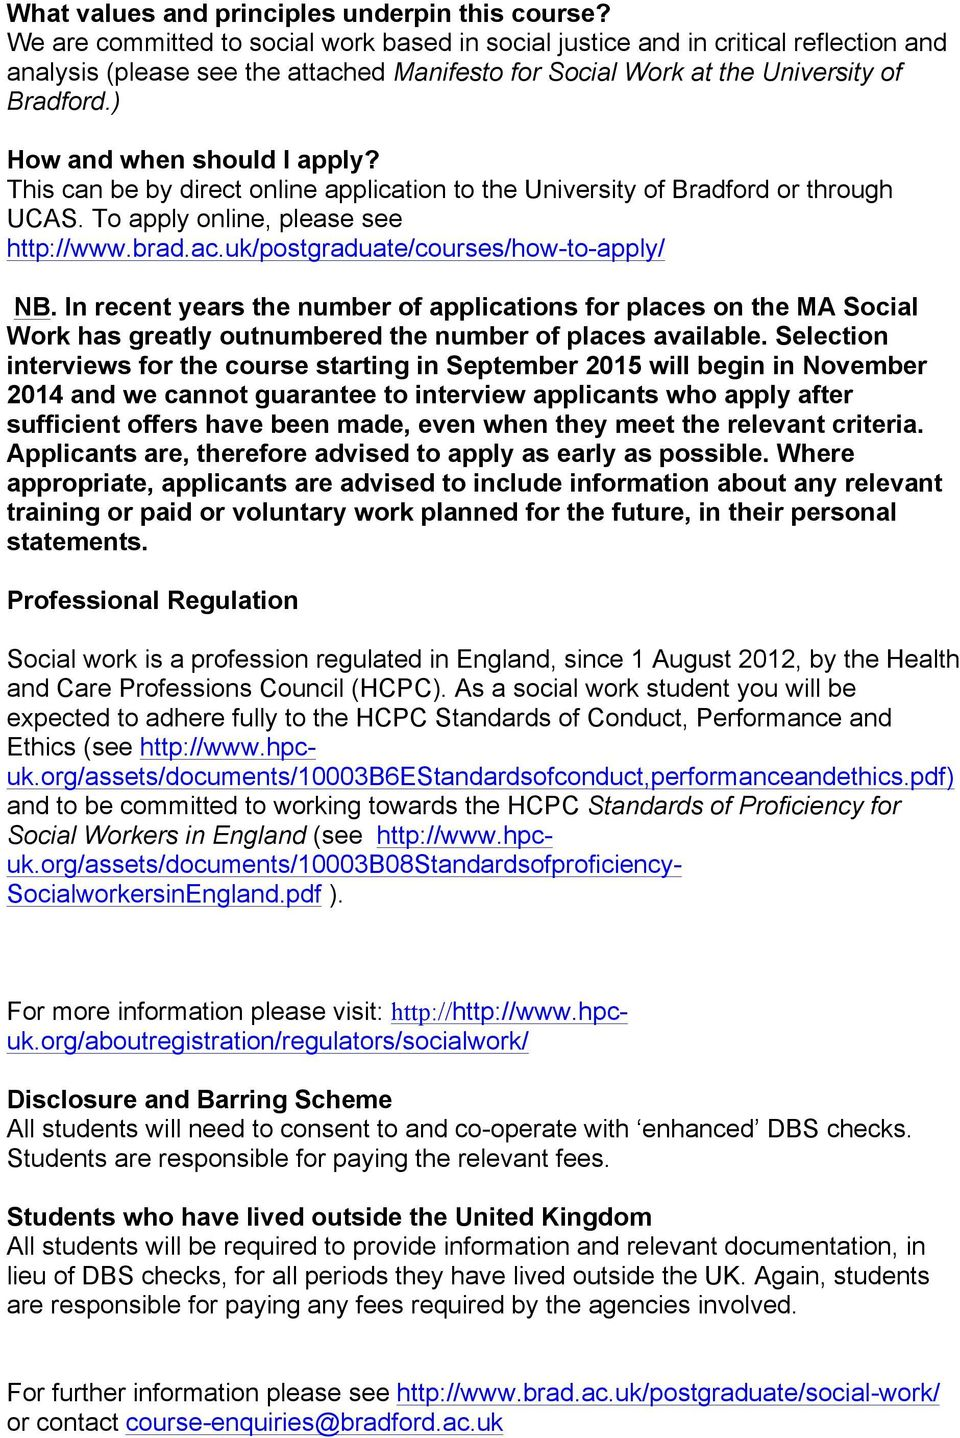 This can be by direct nline applicatin t the University f Bradfrd r thrugh UCAS. T apply nline, please see http://www.brad.ac.uk/pstgraduate/curses/hw-t-apply/ NB.